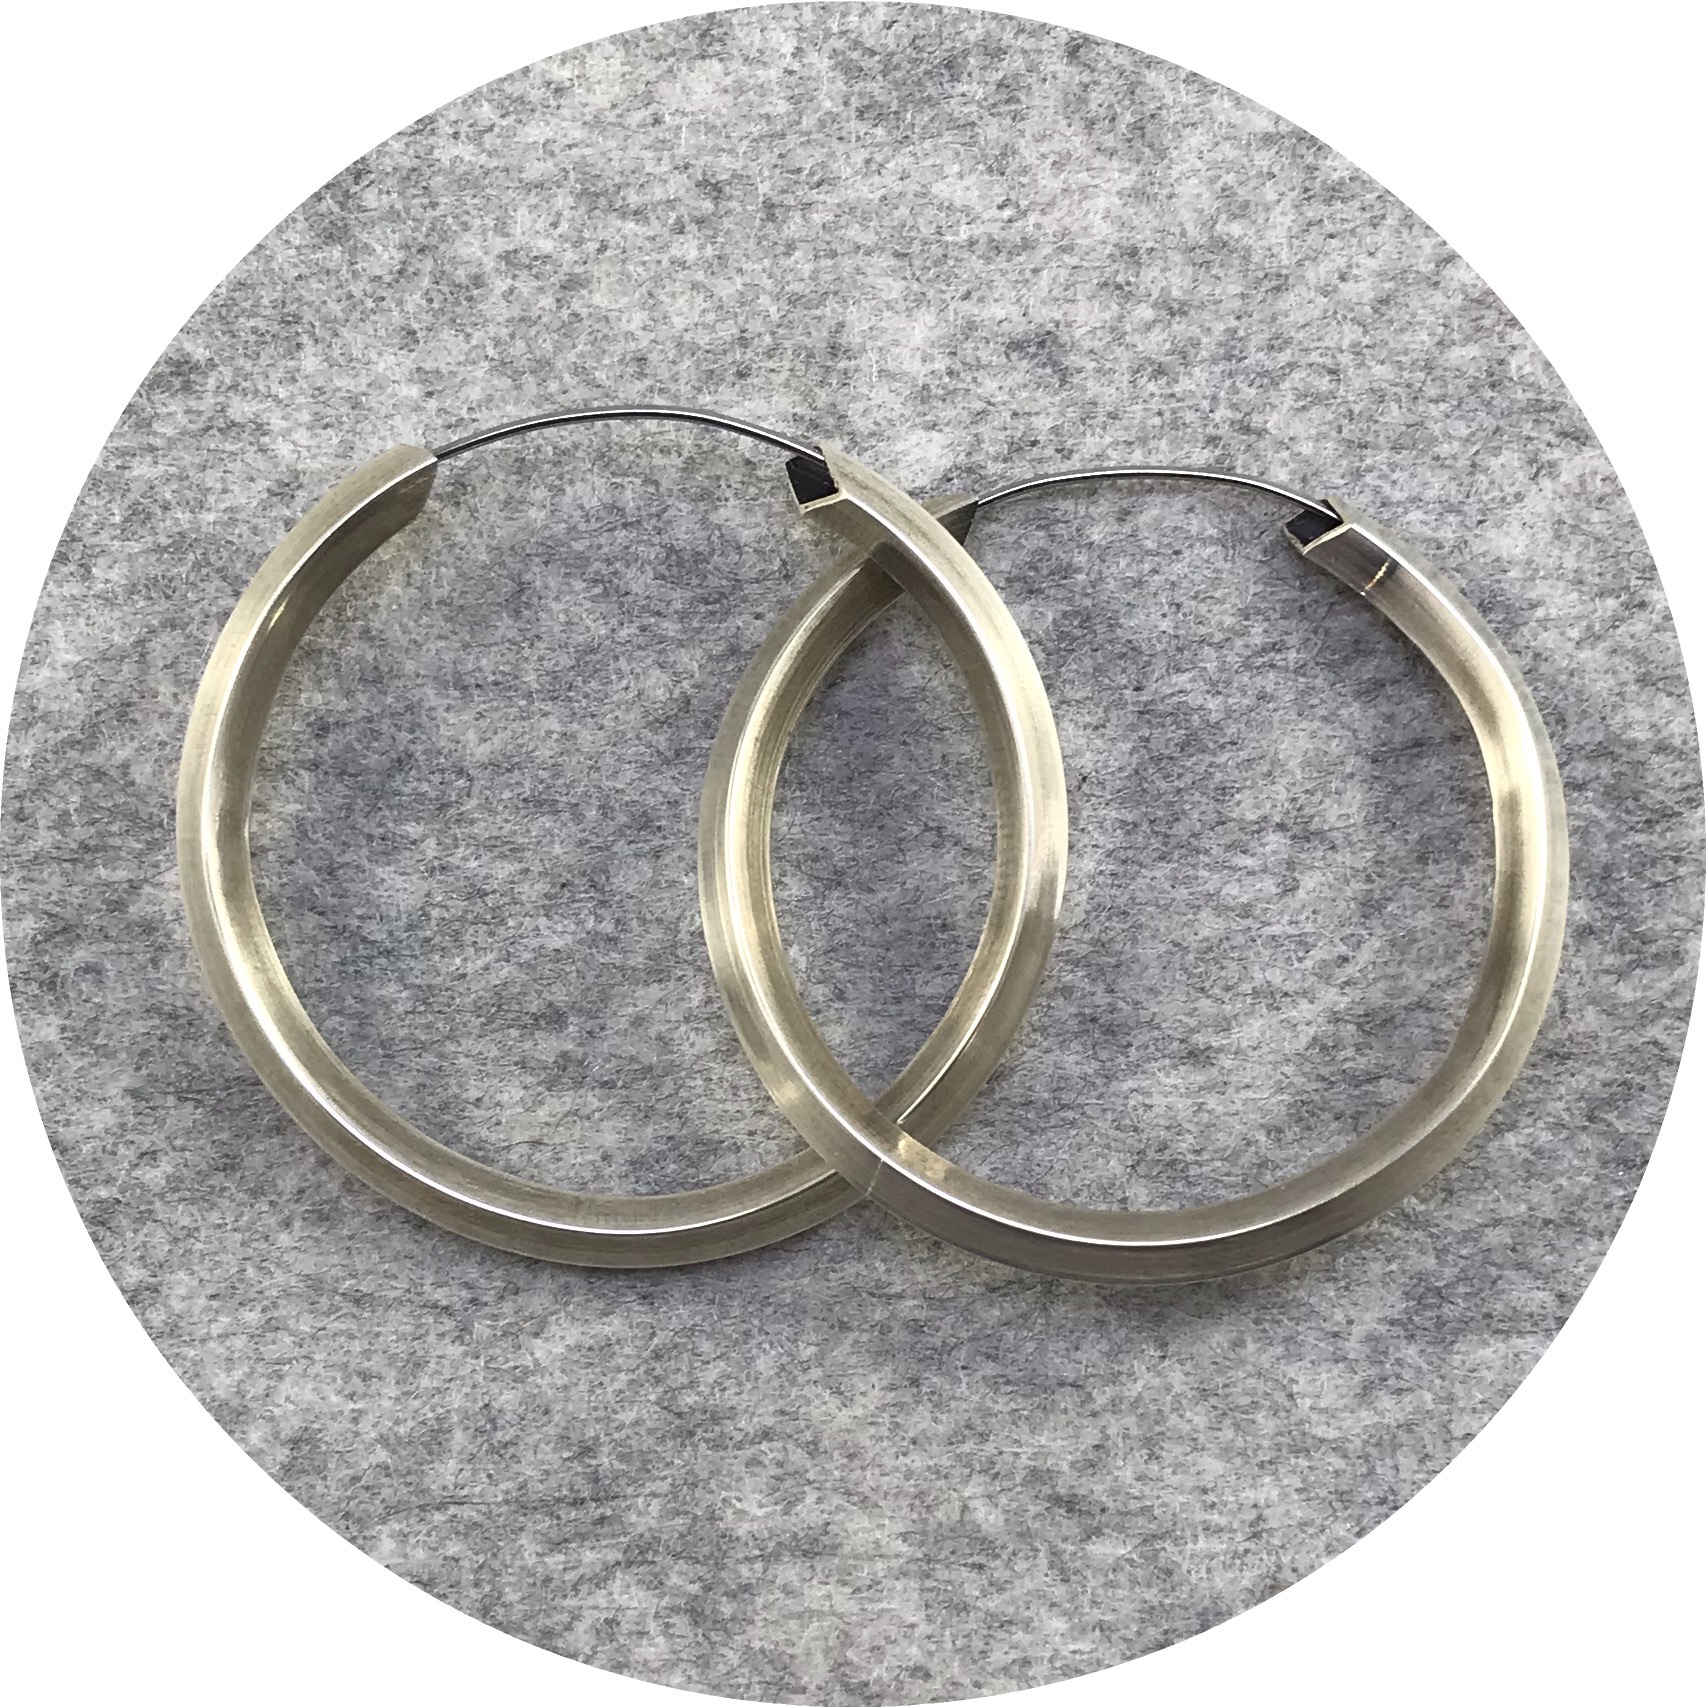 Kristina Neumann - 'Continuous Loop Hoop', 925 silver, stainless steel